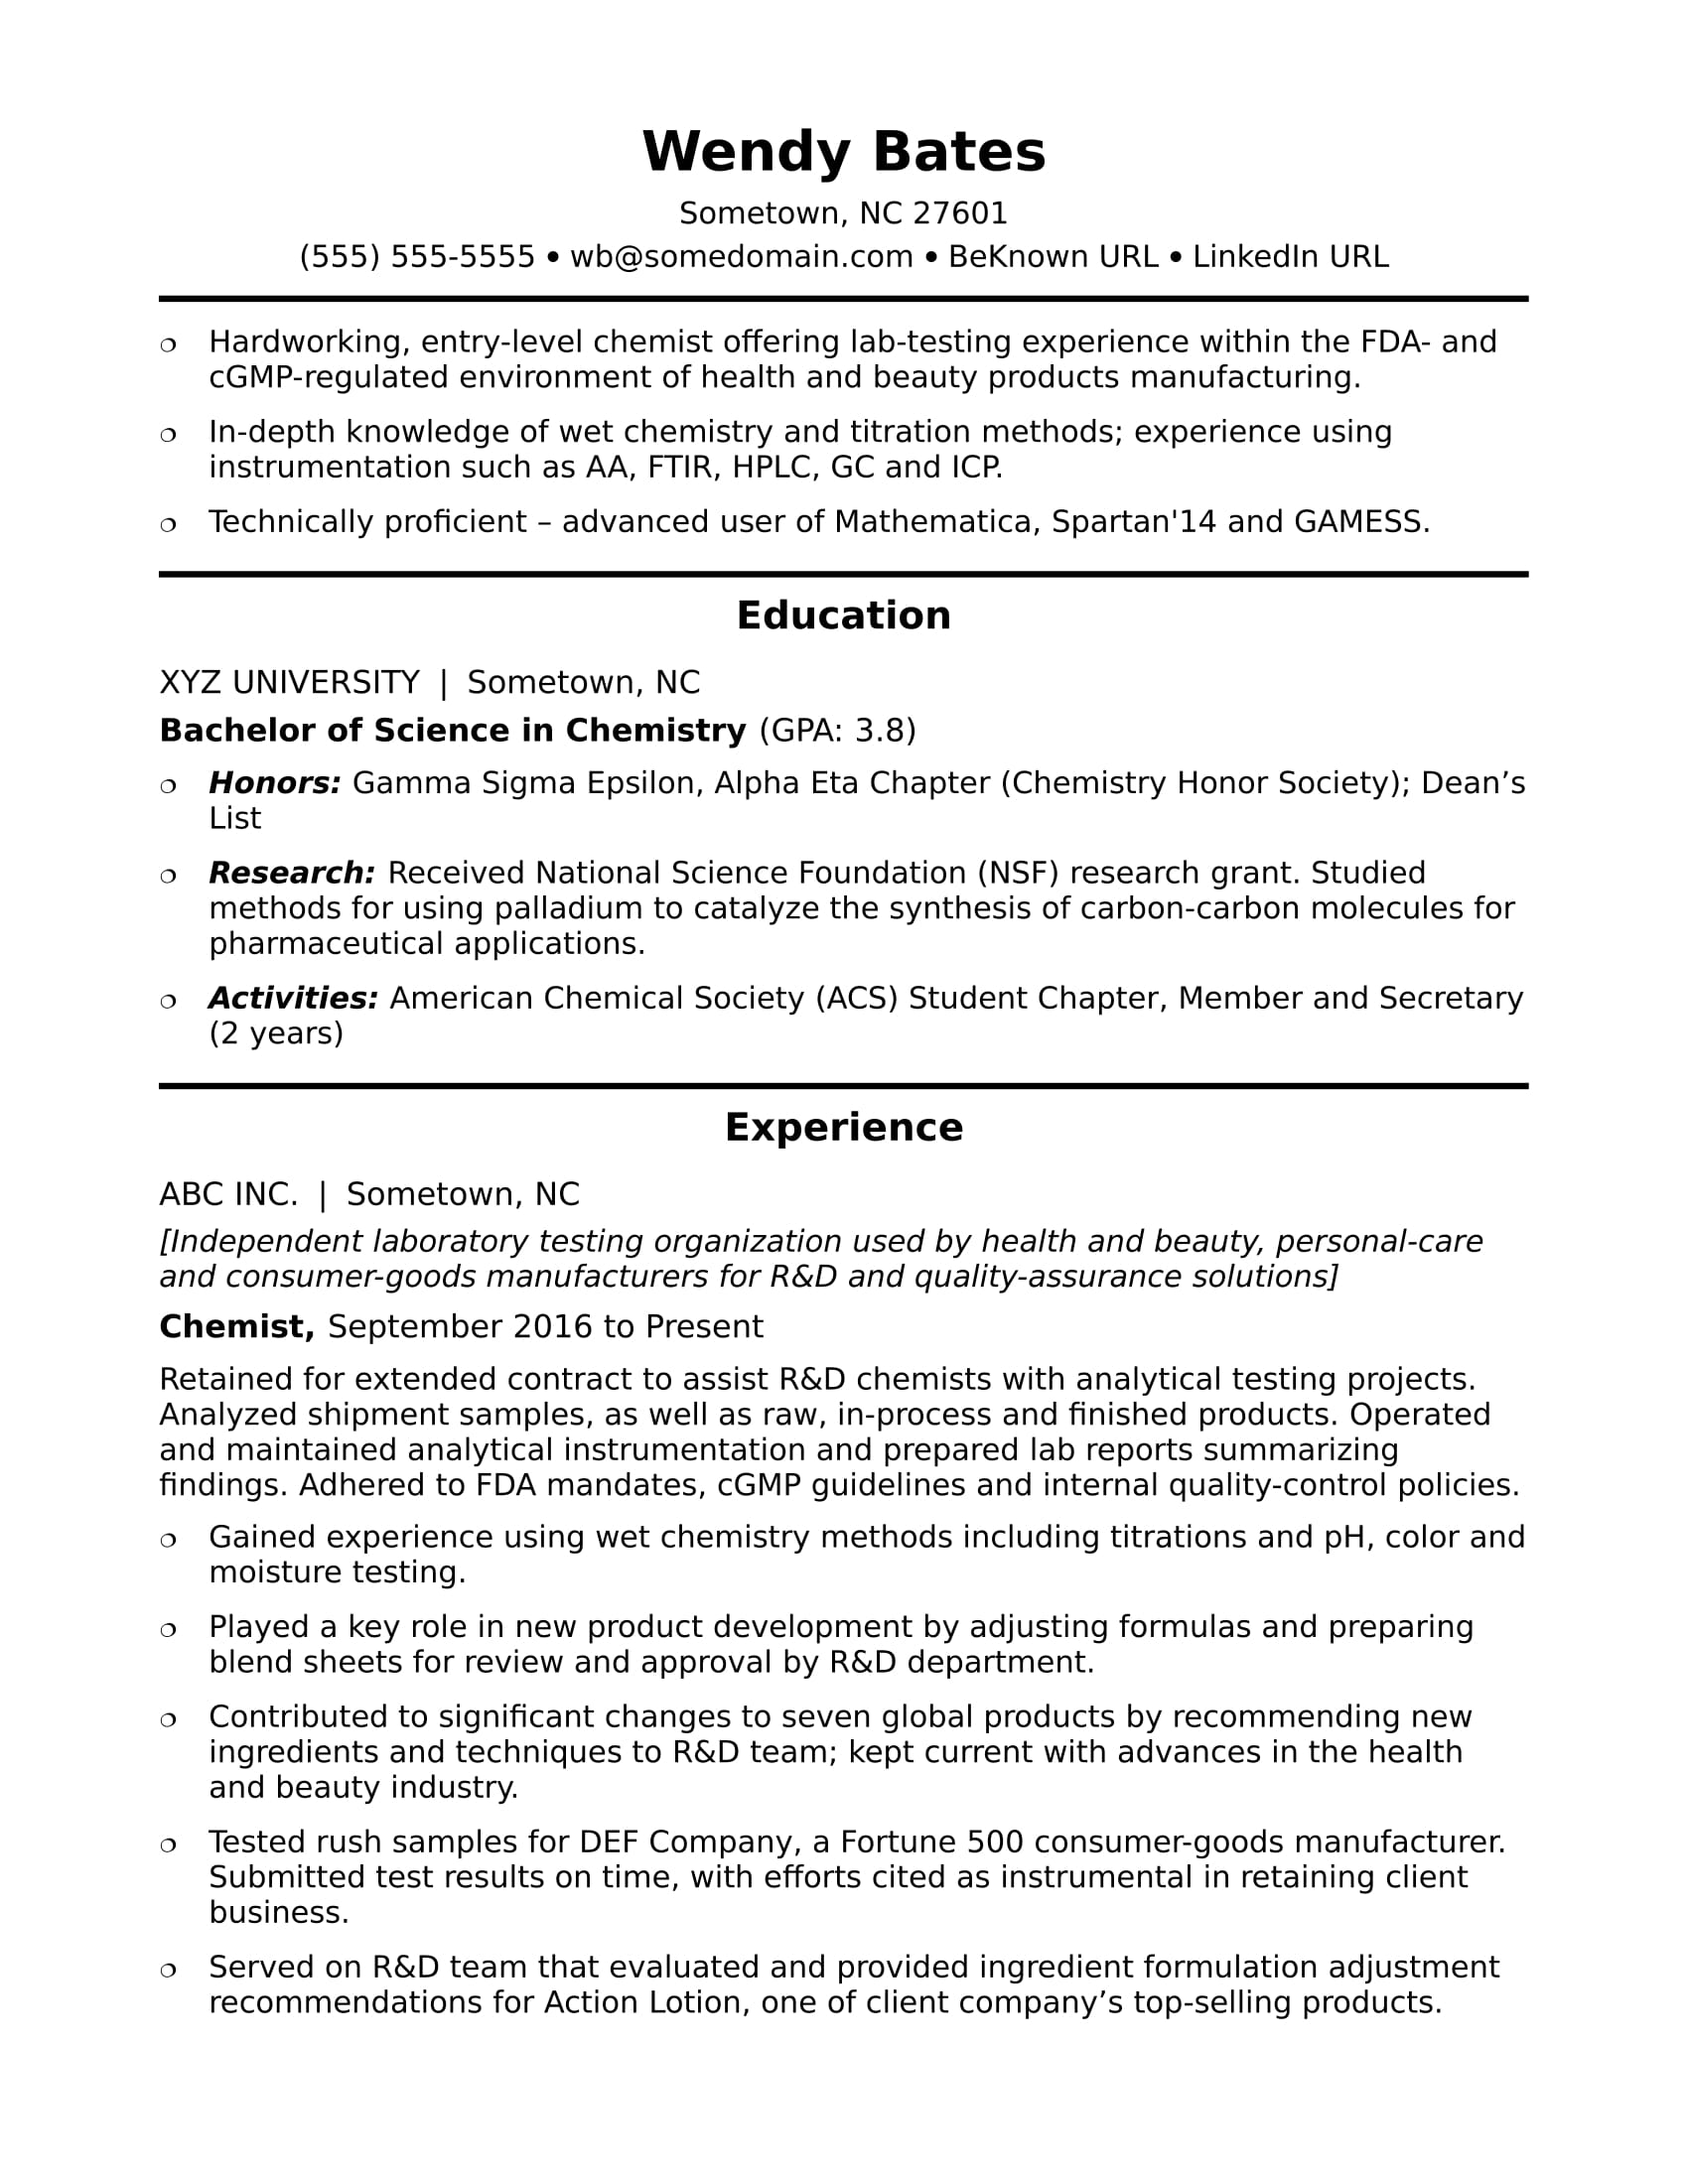 sample resume for quality control chemist